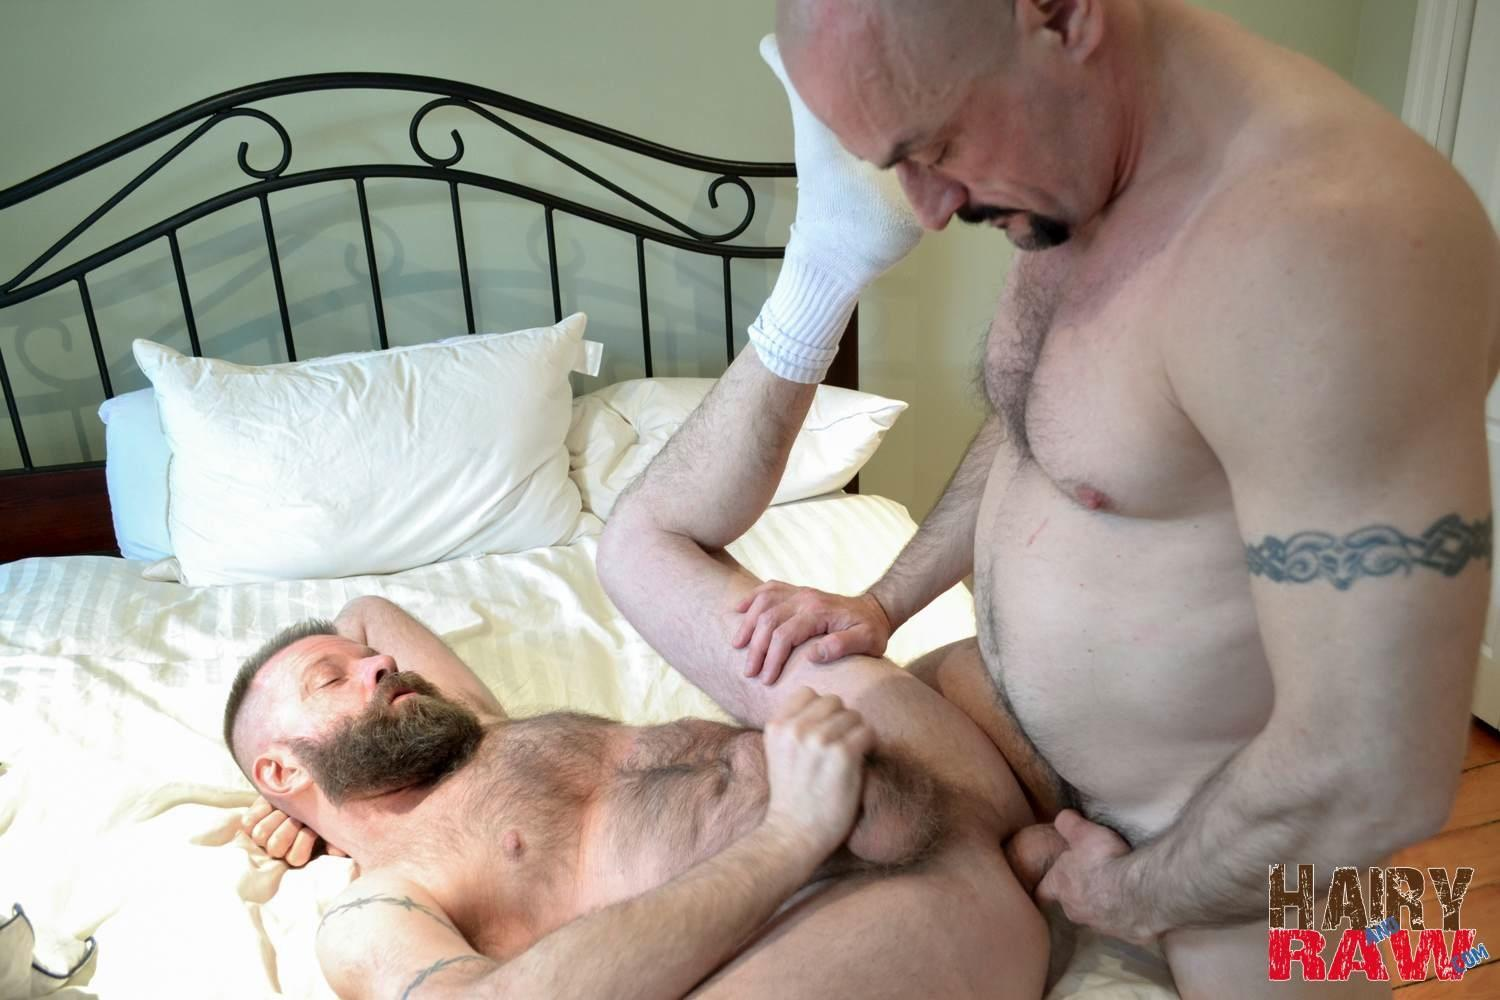 Hairy-and-Raw-Troy-Collins-and-CanaDad-Masculine-Hairy-Daddies-Fucking-Bareback-Amateur-Gay-Porn-14 Hairy Masucline Daddies Flip Flop Fucking Bareback